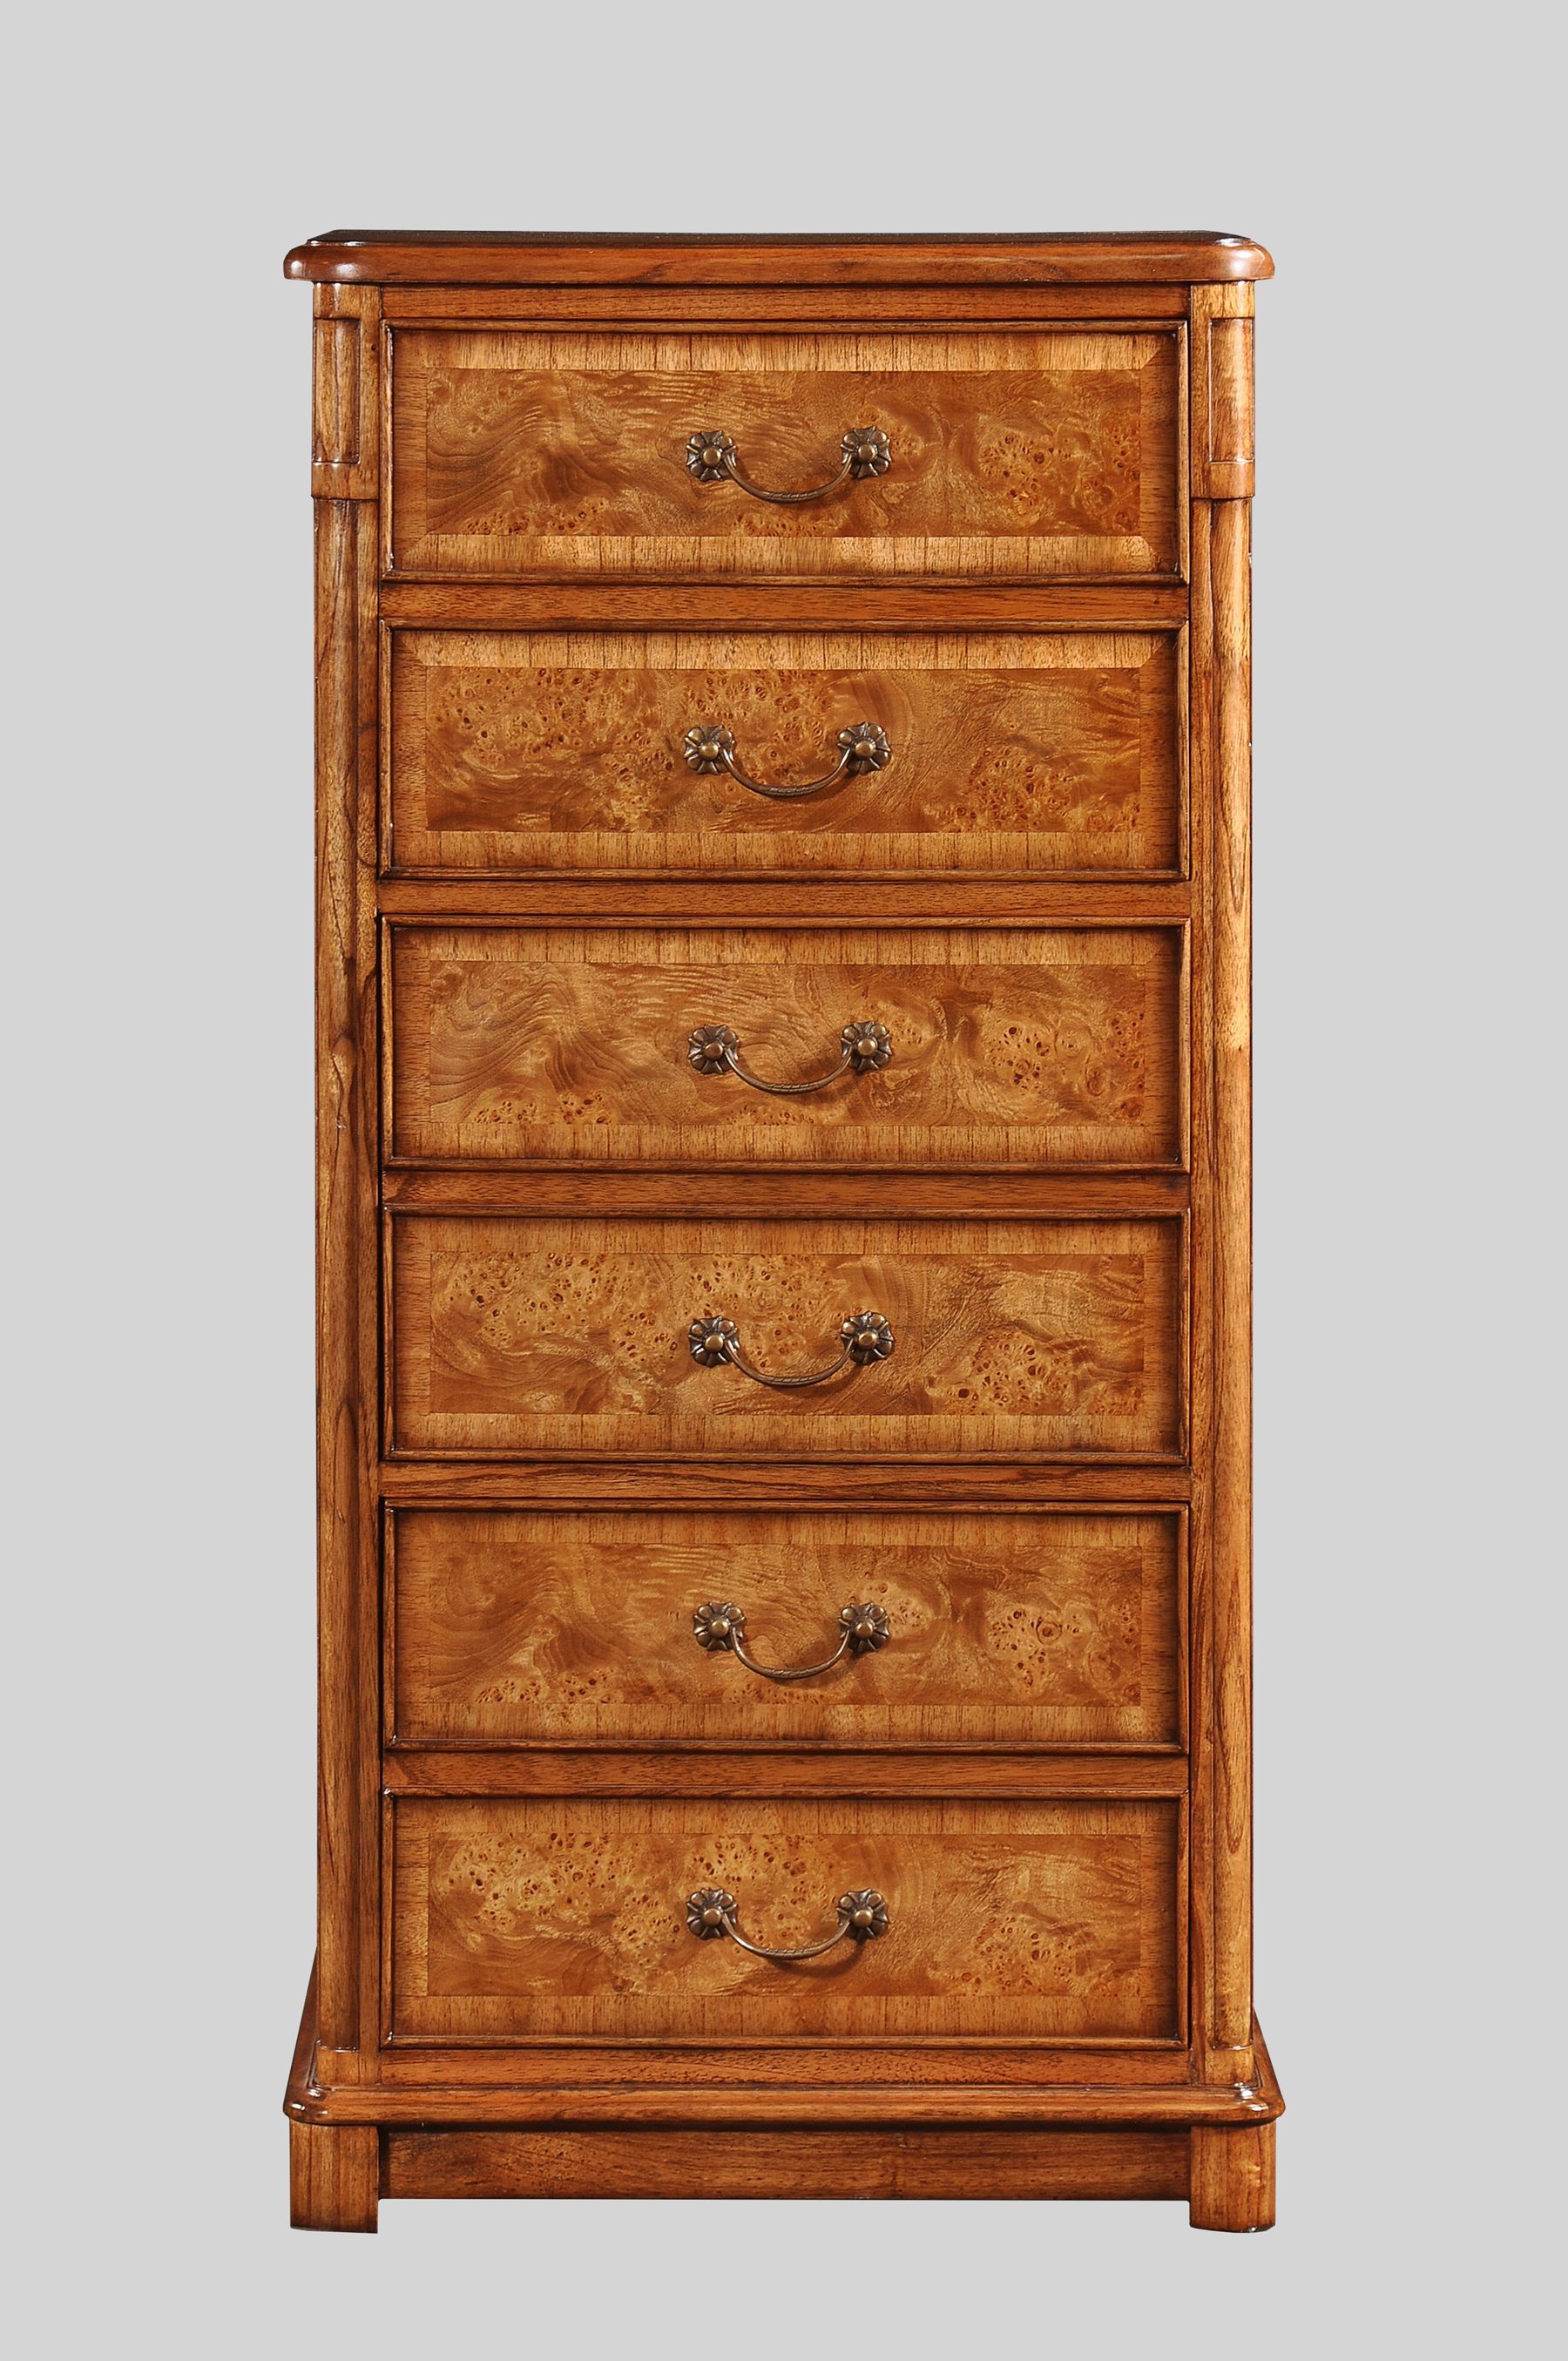 Hampton 3 Drawer Filing Cabinet which is handcrafted from solid mindi wood with burr walnut veneers. It features 3 filing drawers which are finished with antiqued brass handles. Available from Lock Stock and Barrel Furniture.